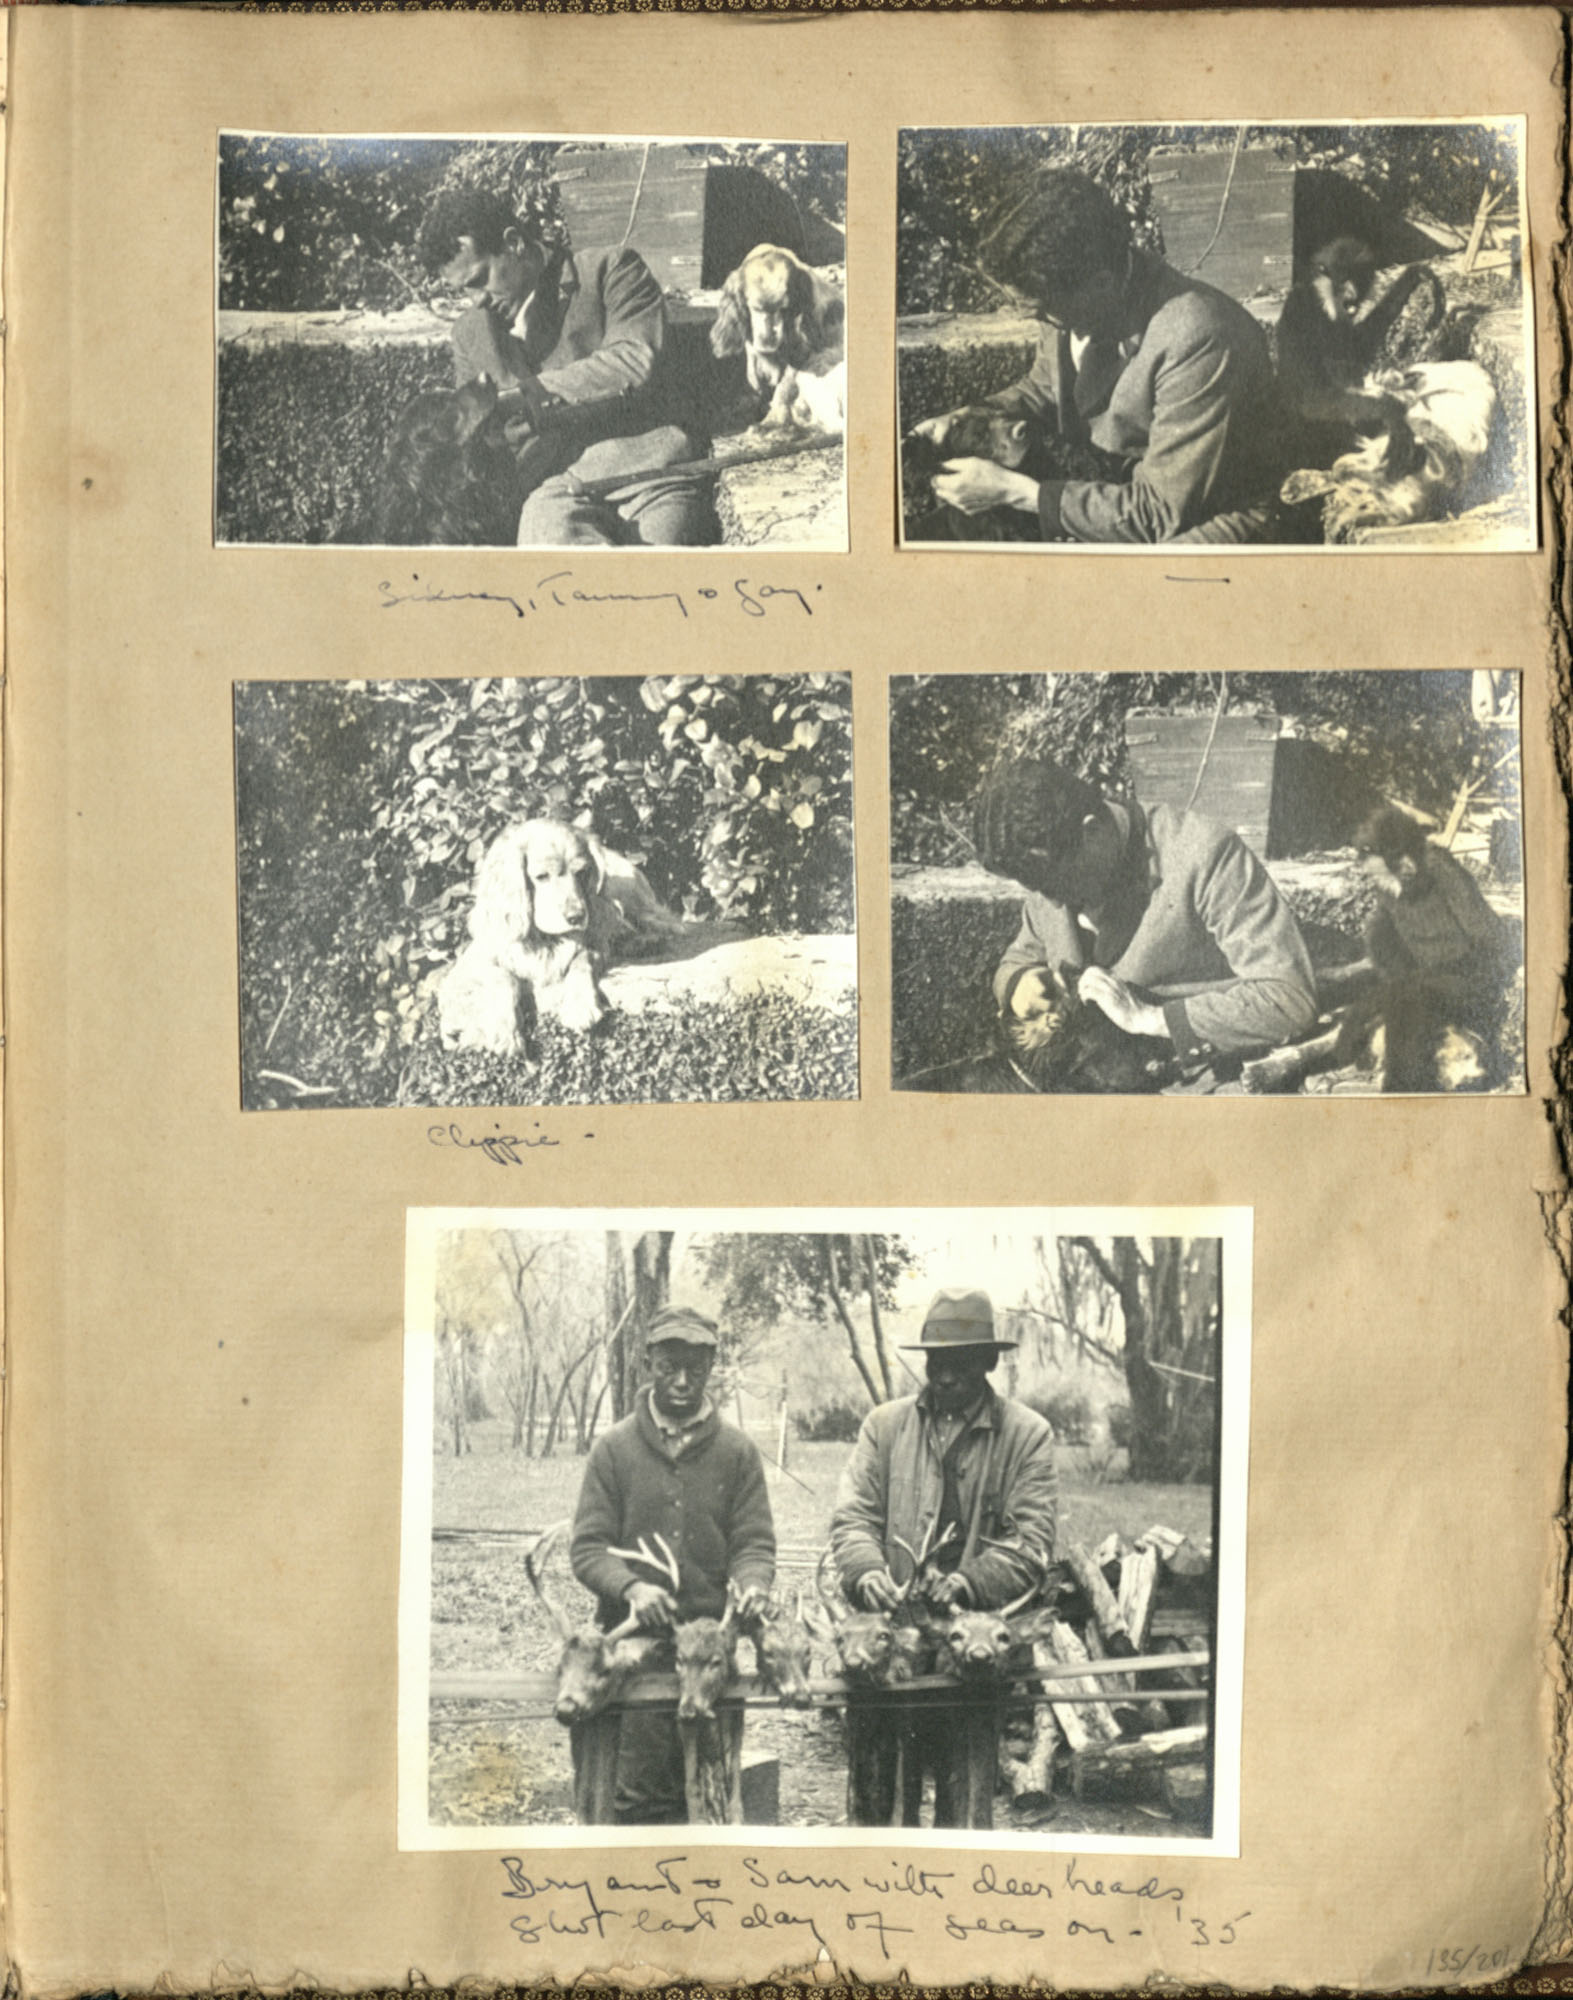 Early Medway and travels album, 1929-1937, page 135